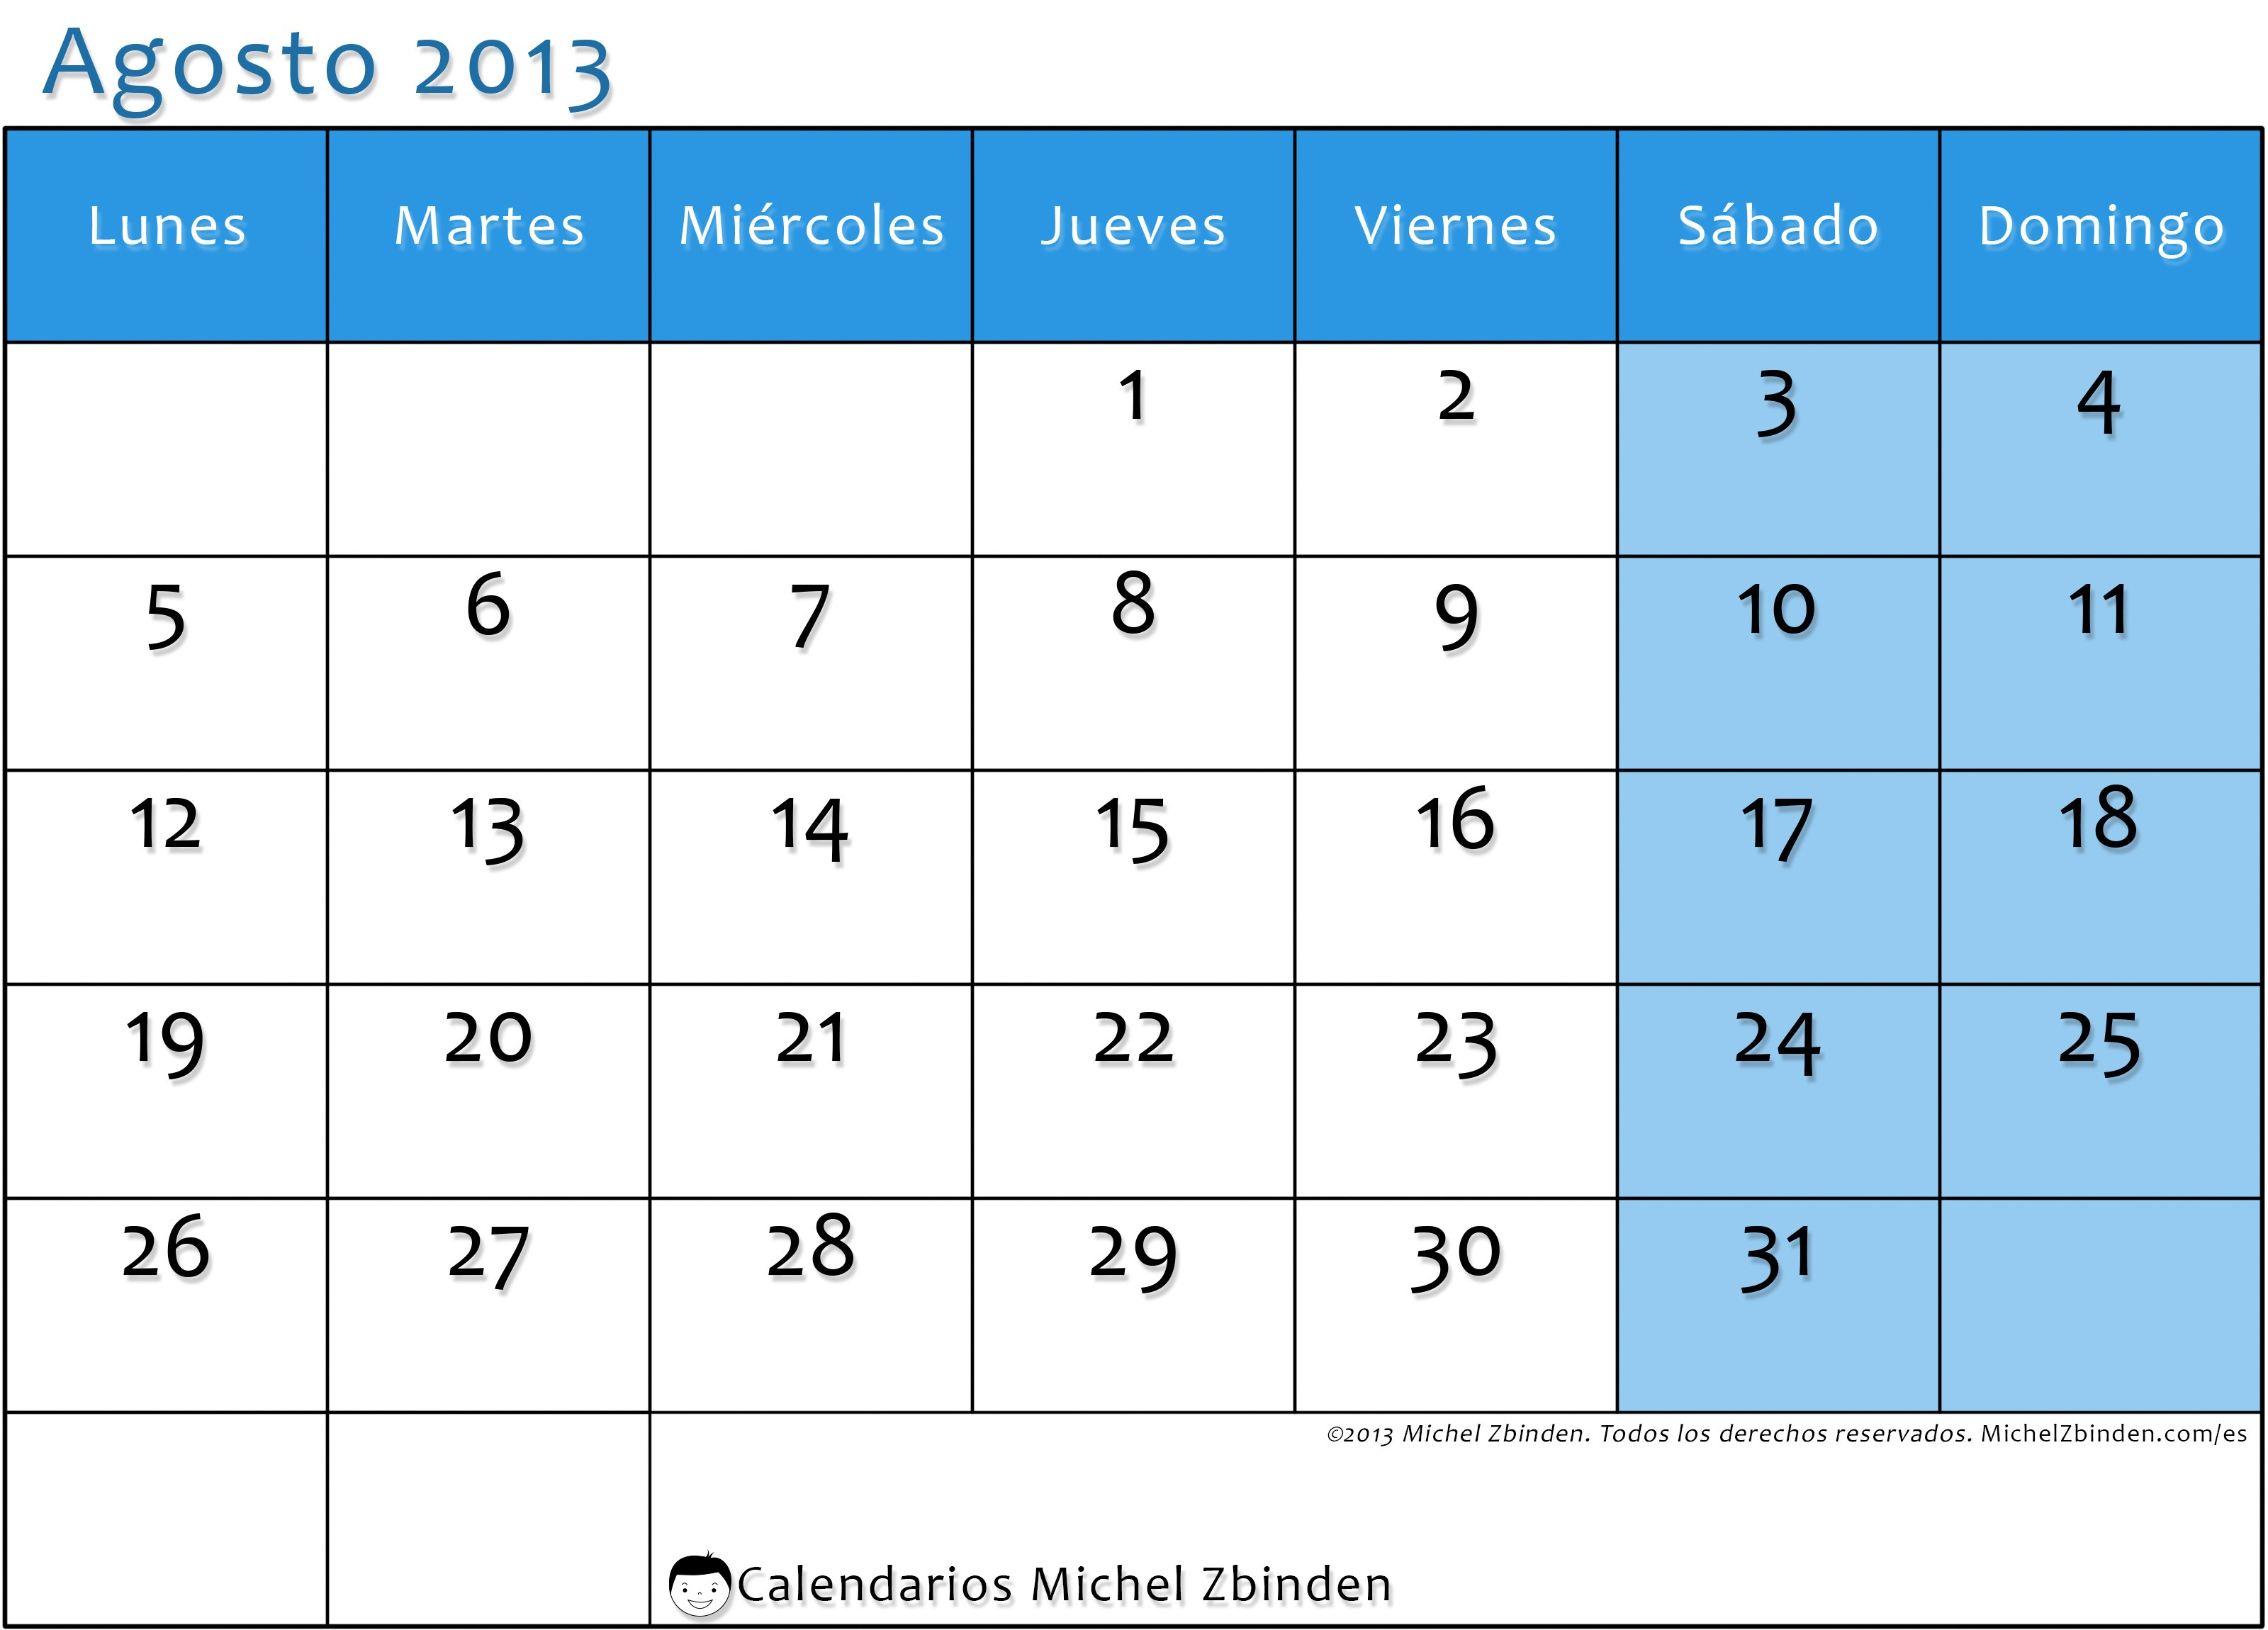 Calendario Abril Para Imprimir Recientes Calendario Janeiro 2015 tomburorddiner Of Calendario Abril Para Imprimir Más Actual 15 Imágenes De Calendario Laboral 2018 De Madrid Para Imprimir Y